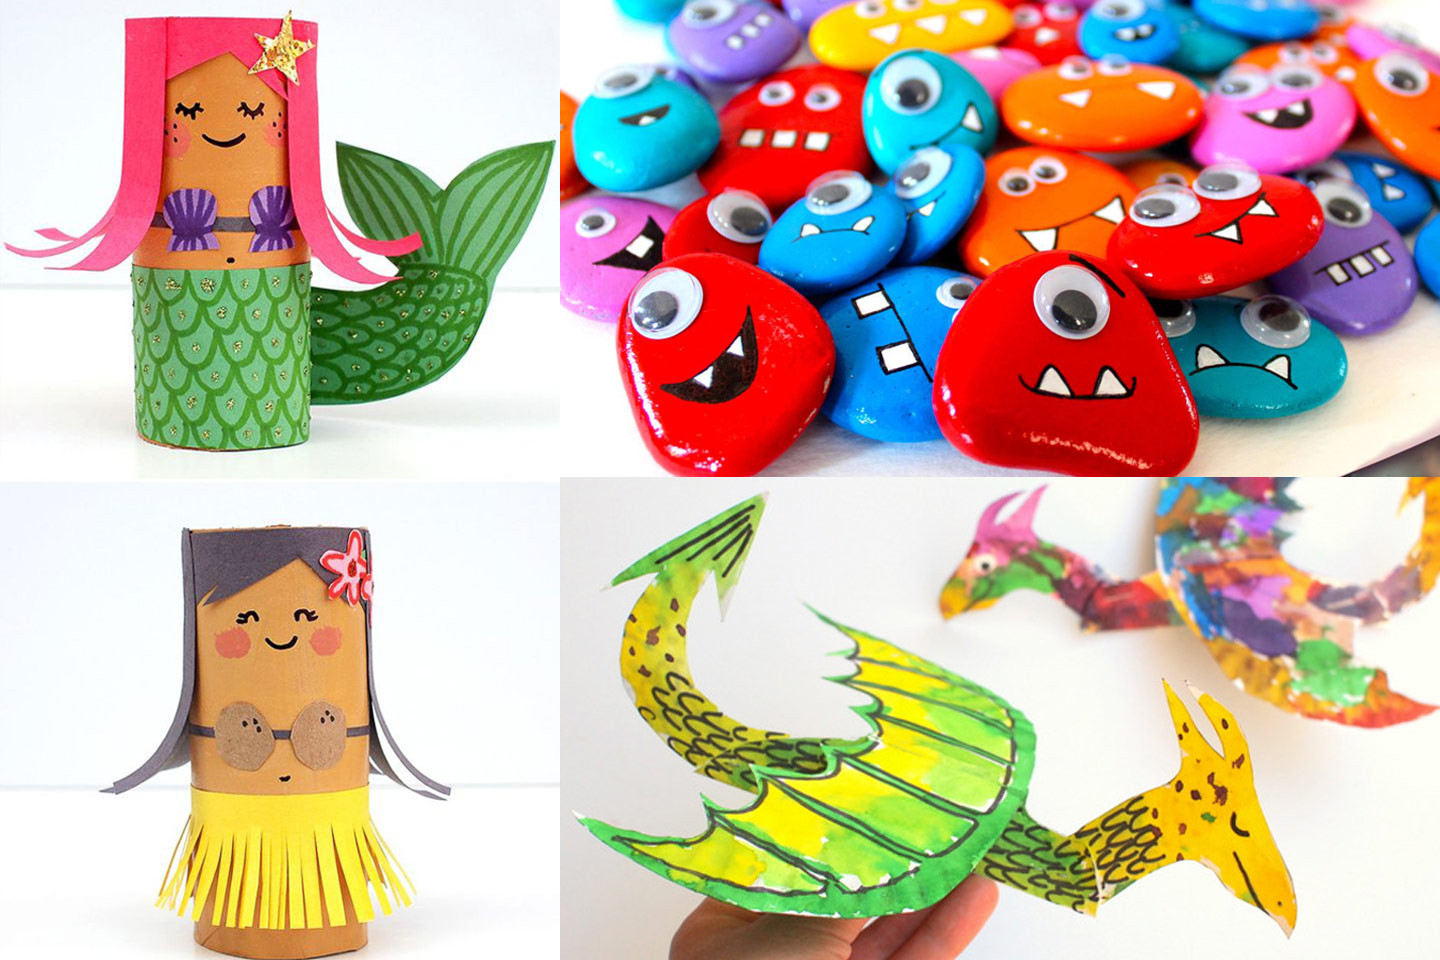 Best ideas about Creative Crafts For Kids . Save or Pin 50 Creative Crafts to Keep your Kids Busy Now.